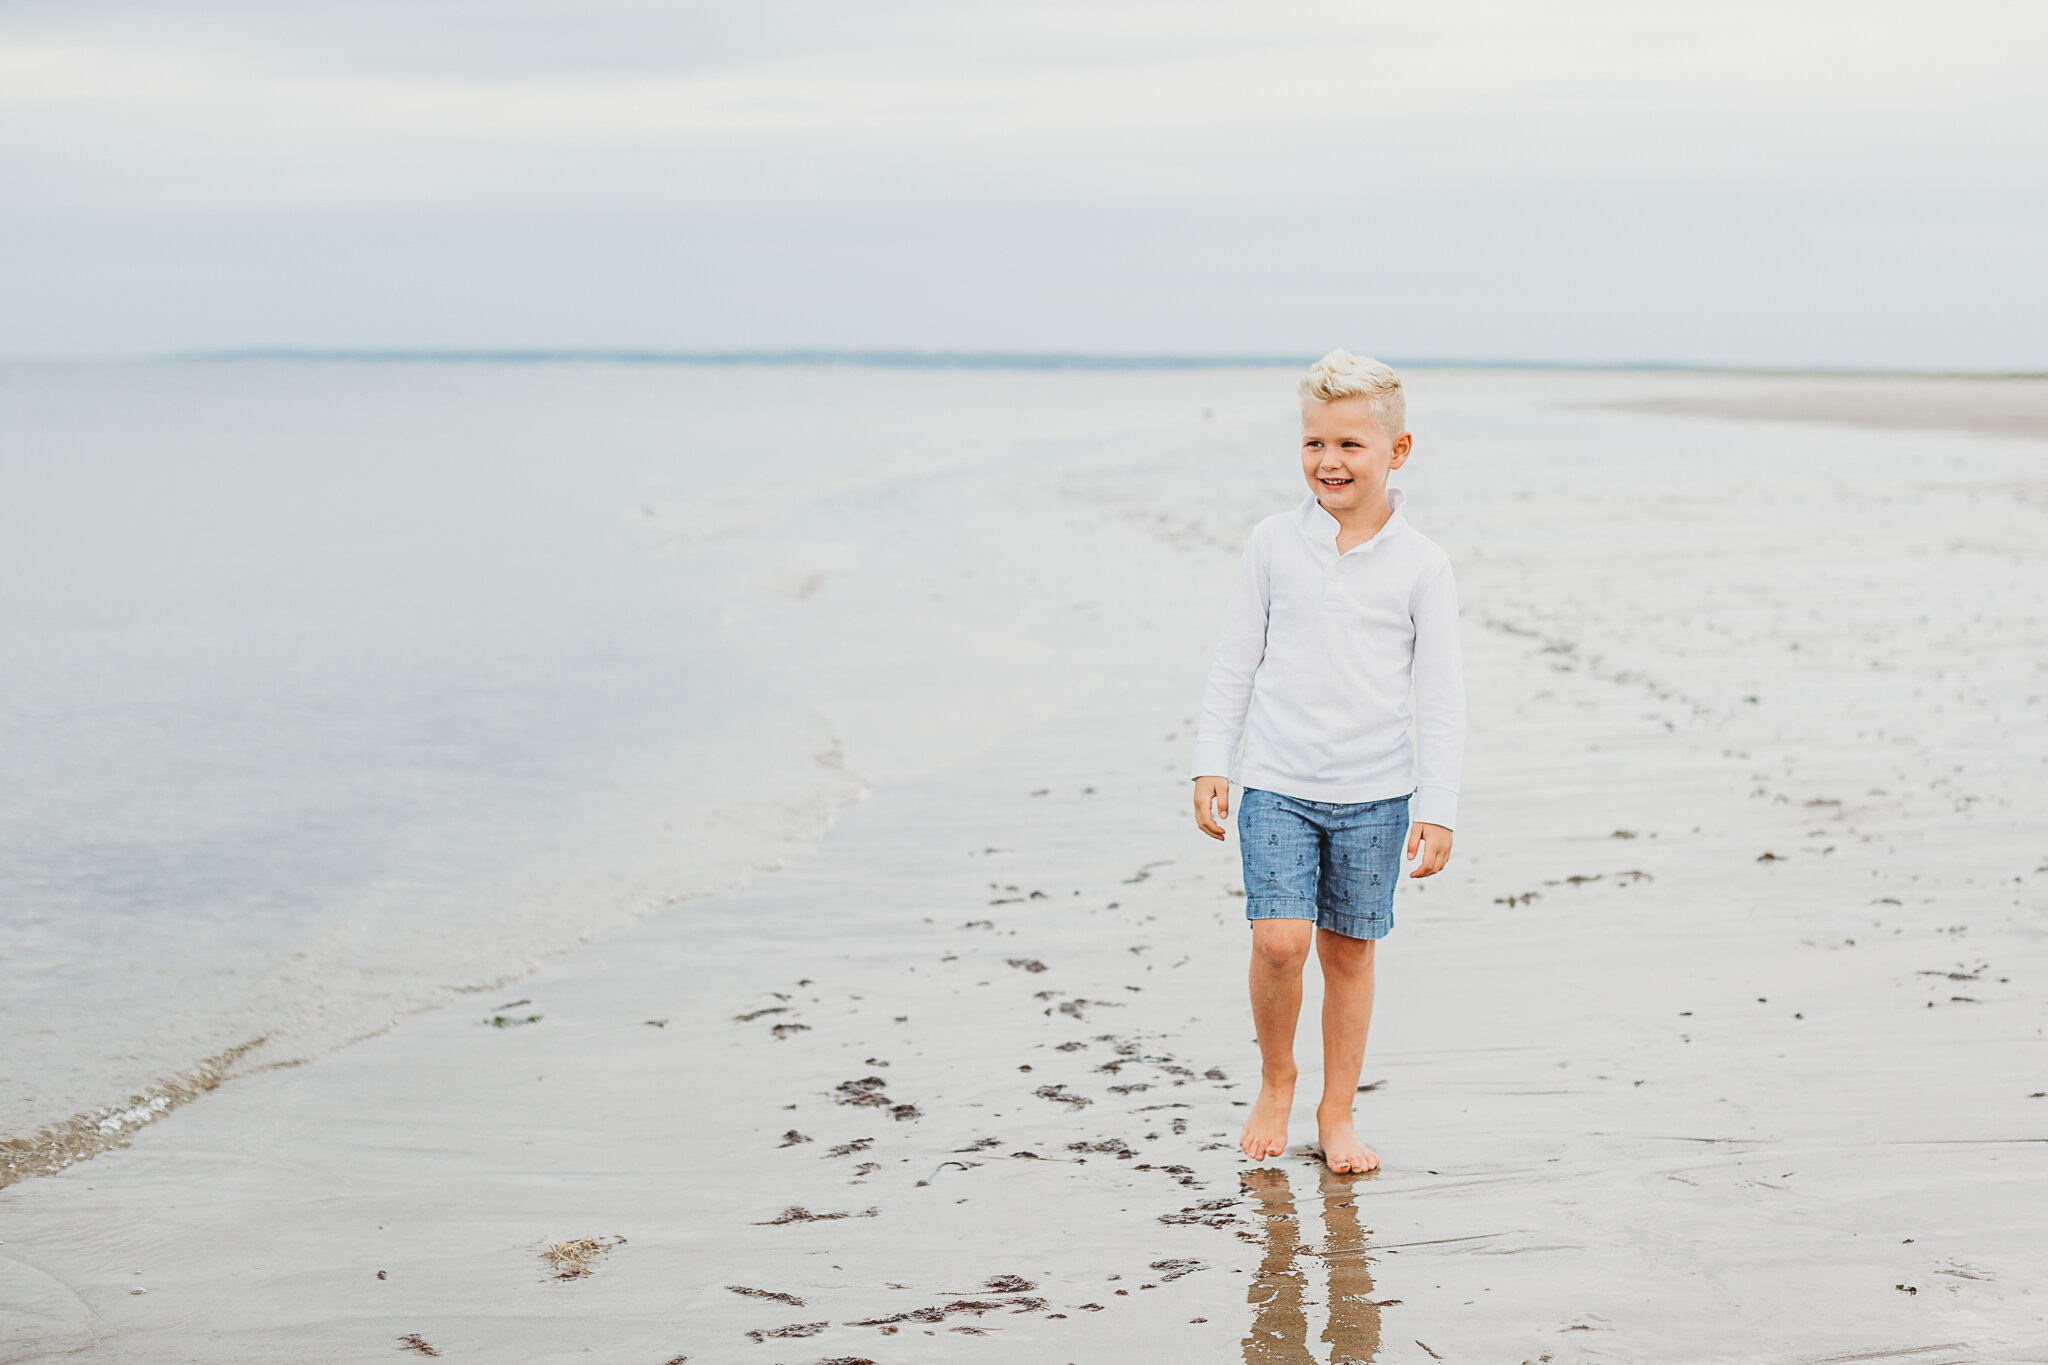 The biggest benefit to cloudy days? We can photograph your family in any direction, because the clouds create a giant diffuser for clean, soft light. This Wellesley, Massachusetts family had gorgeous, clean light on their cloudy beach day session.